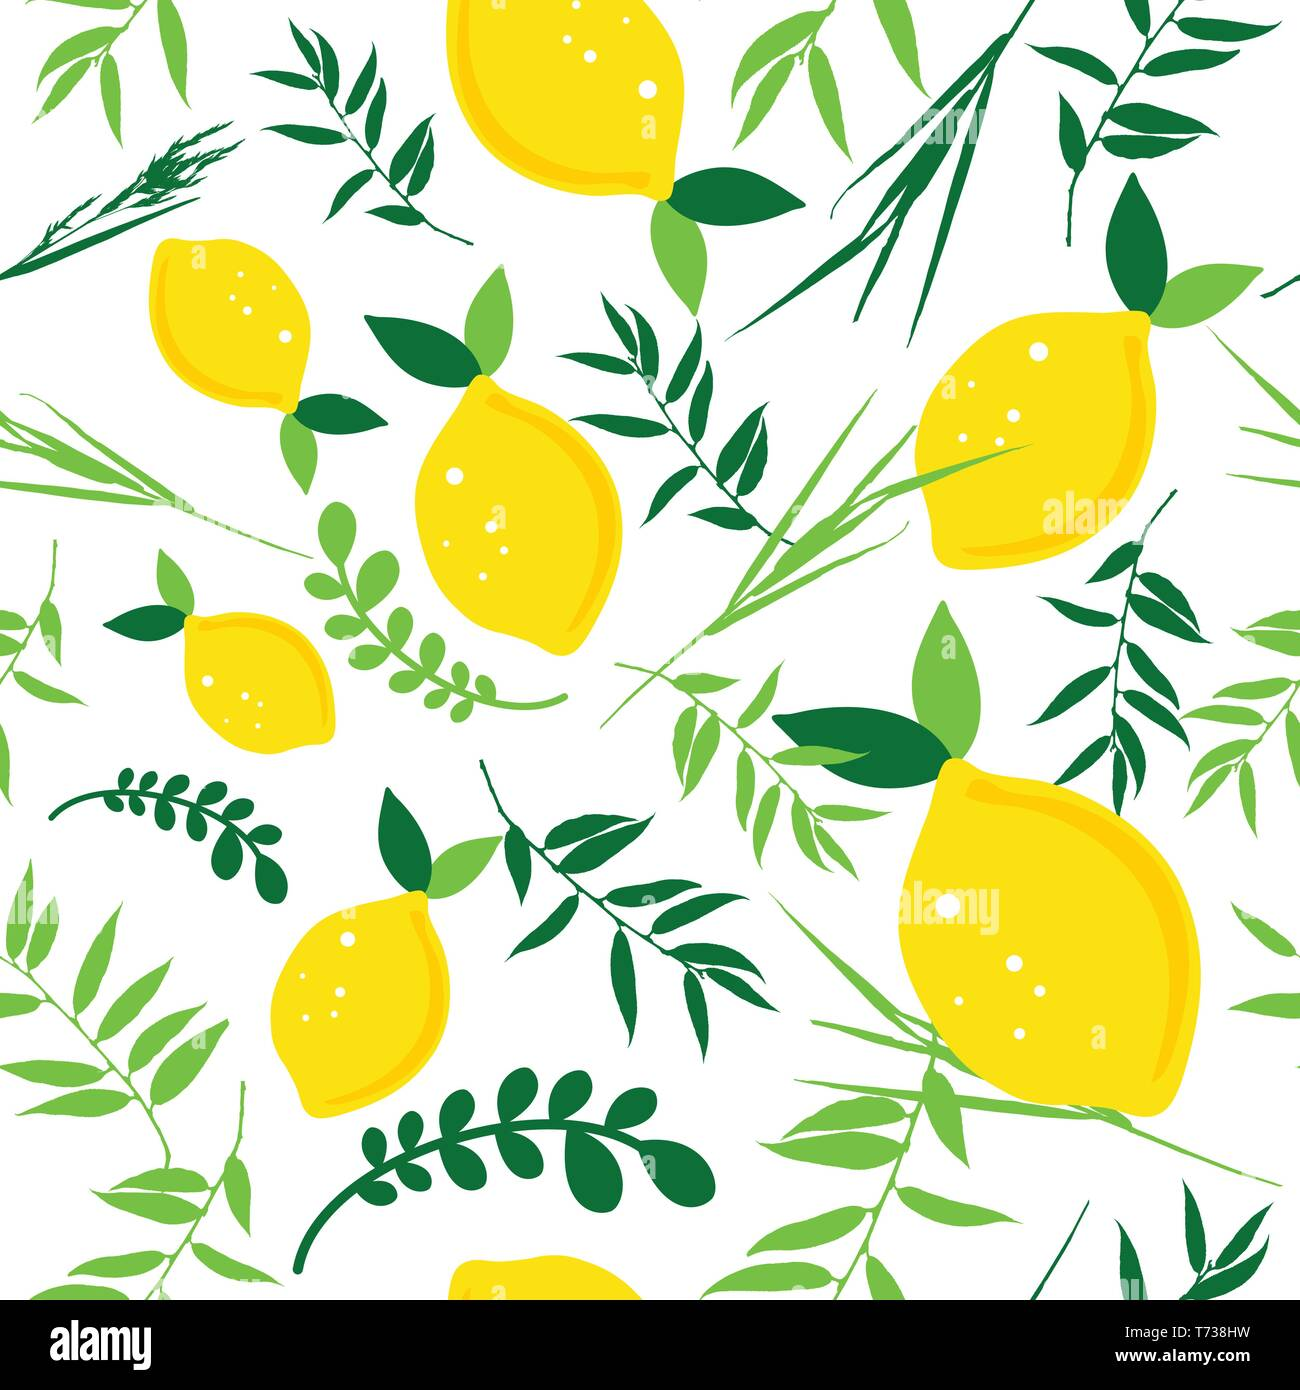 Happy Sukkot seamless pattern. Jewish holiday endless background. Repeating texture with plants. - Stock Vector